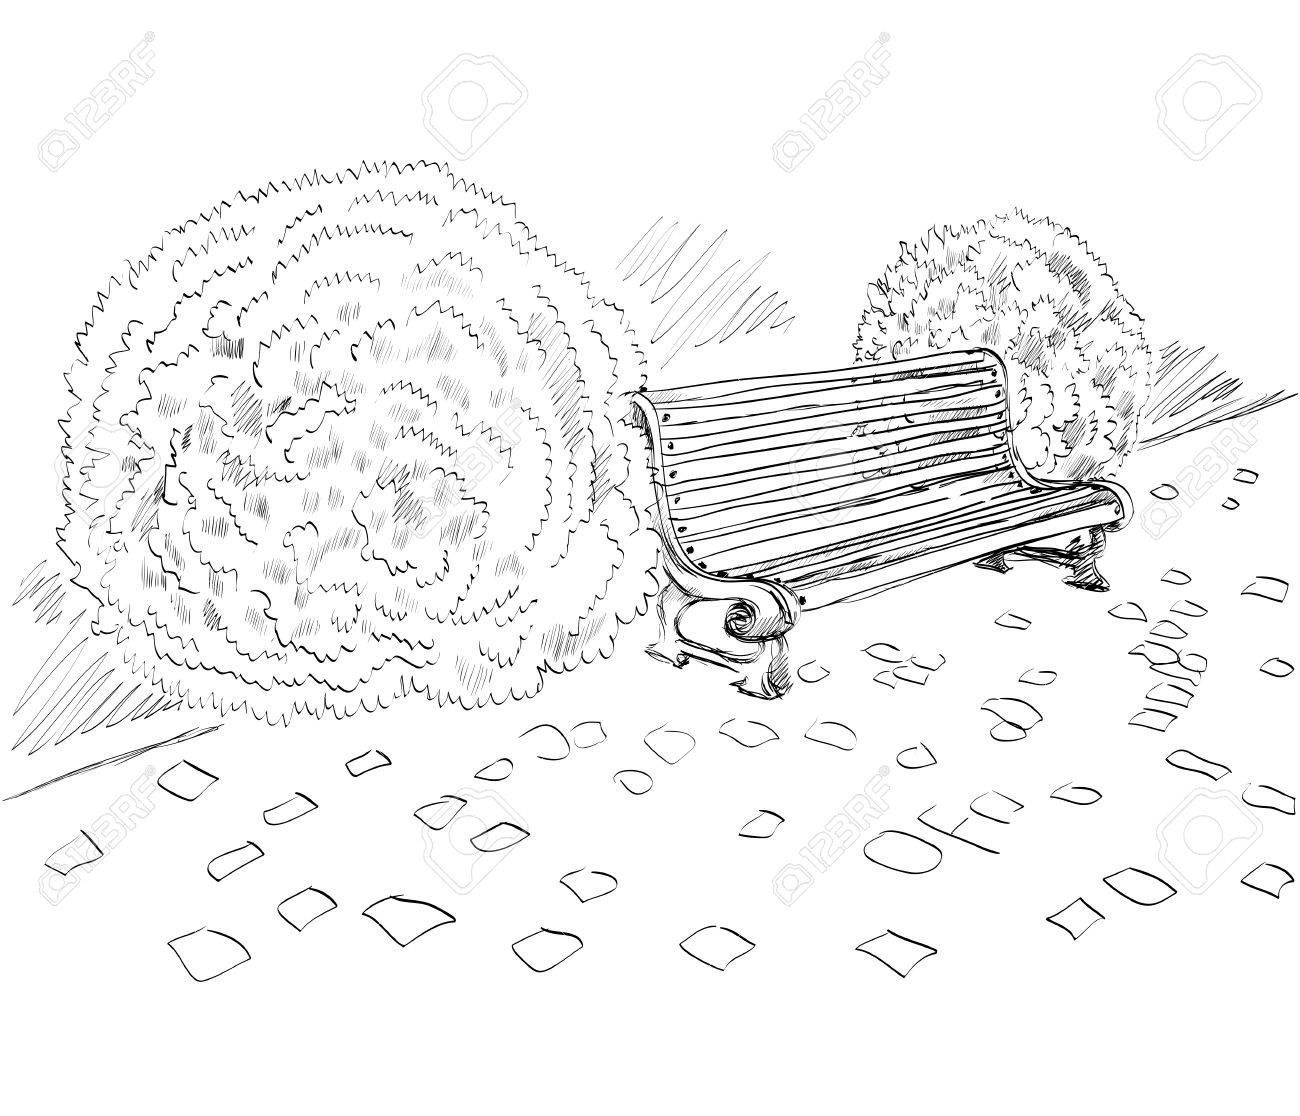 1300x1116 Sketch The Bench In A Park Near The Bushes Royalty Free Cliparts